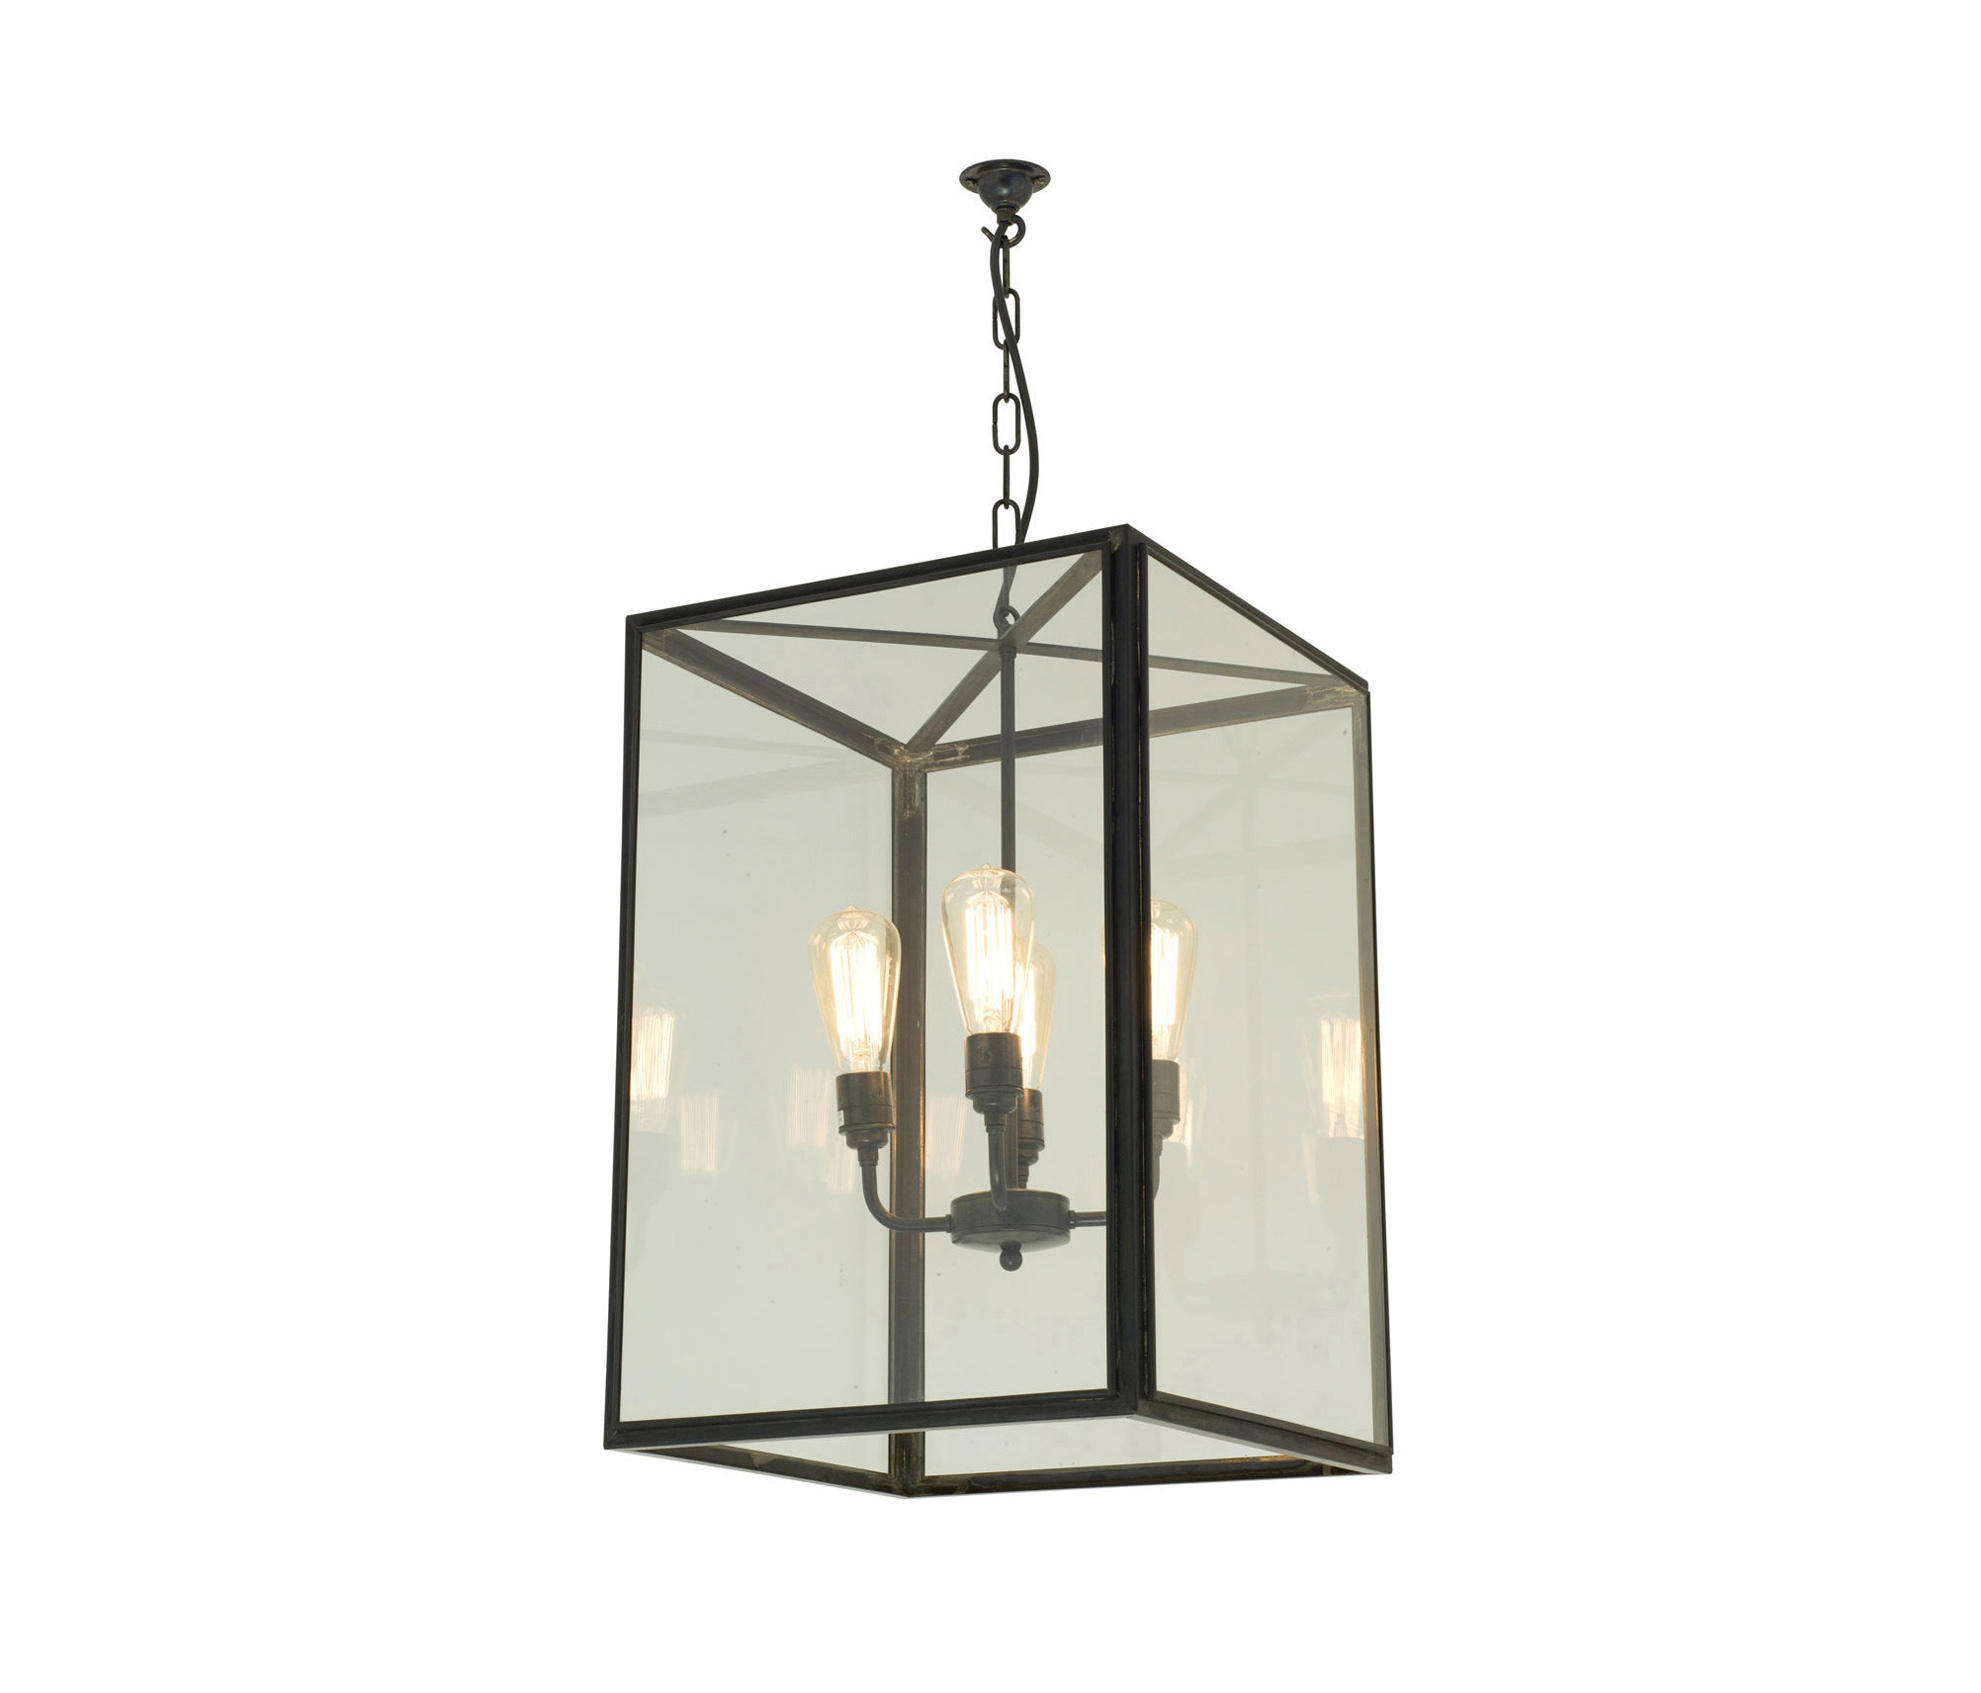 Square Pendant Light Fixture Gallery